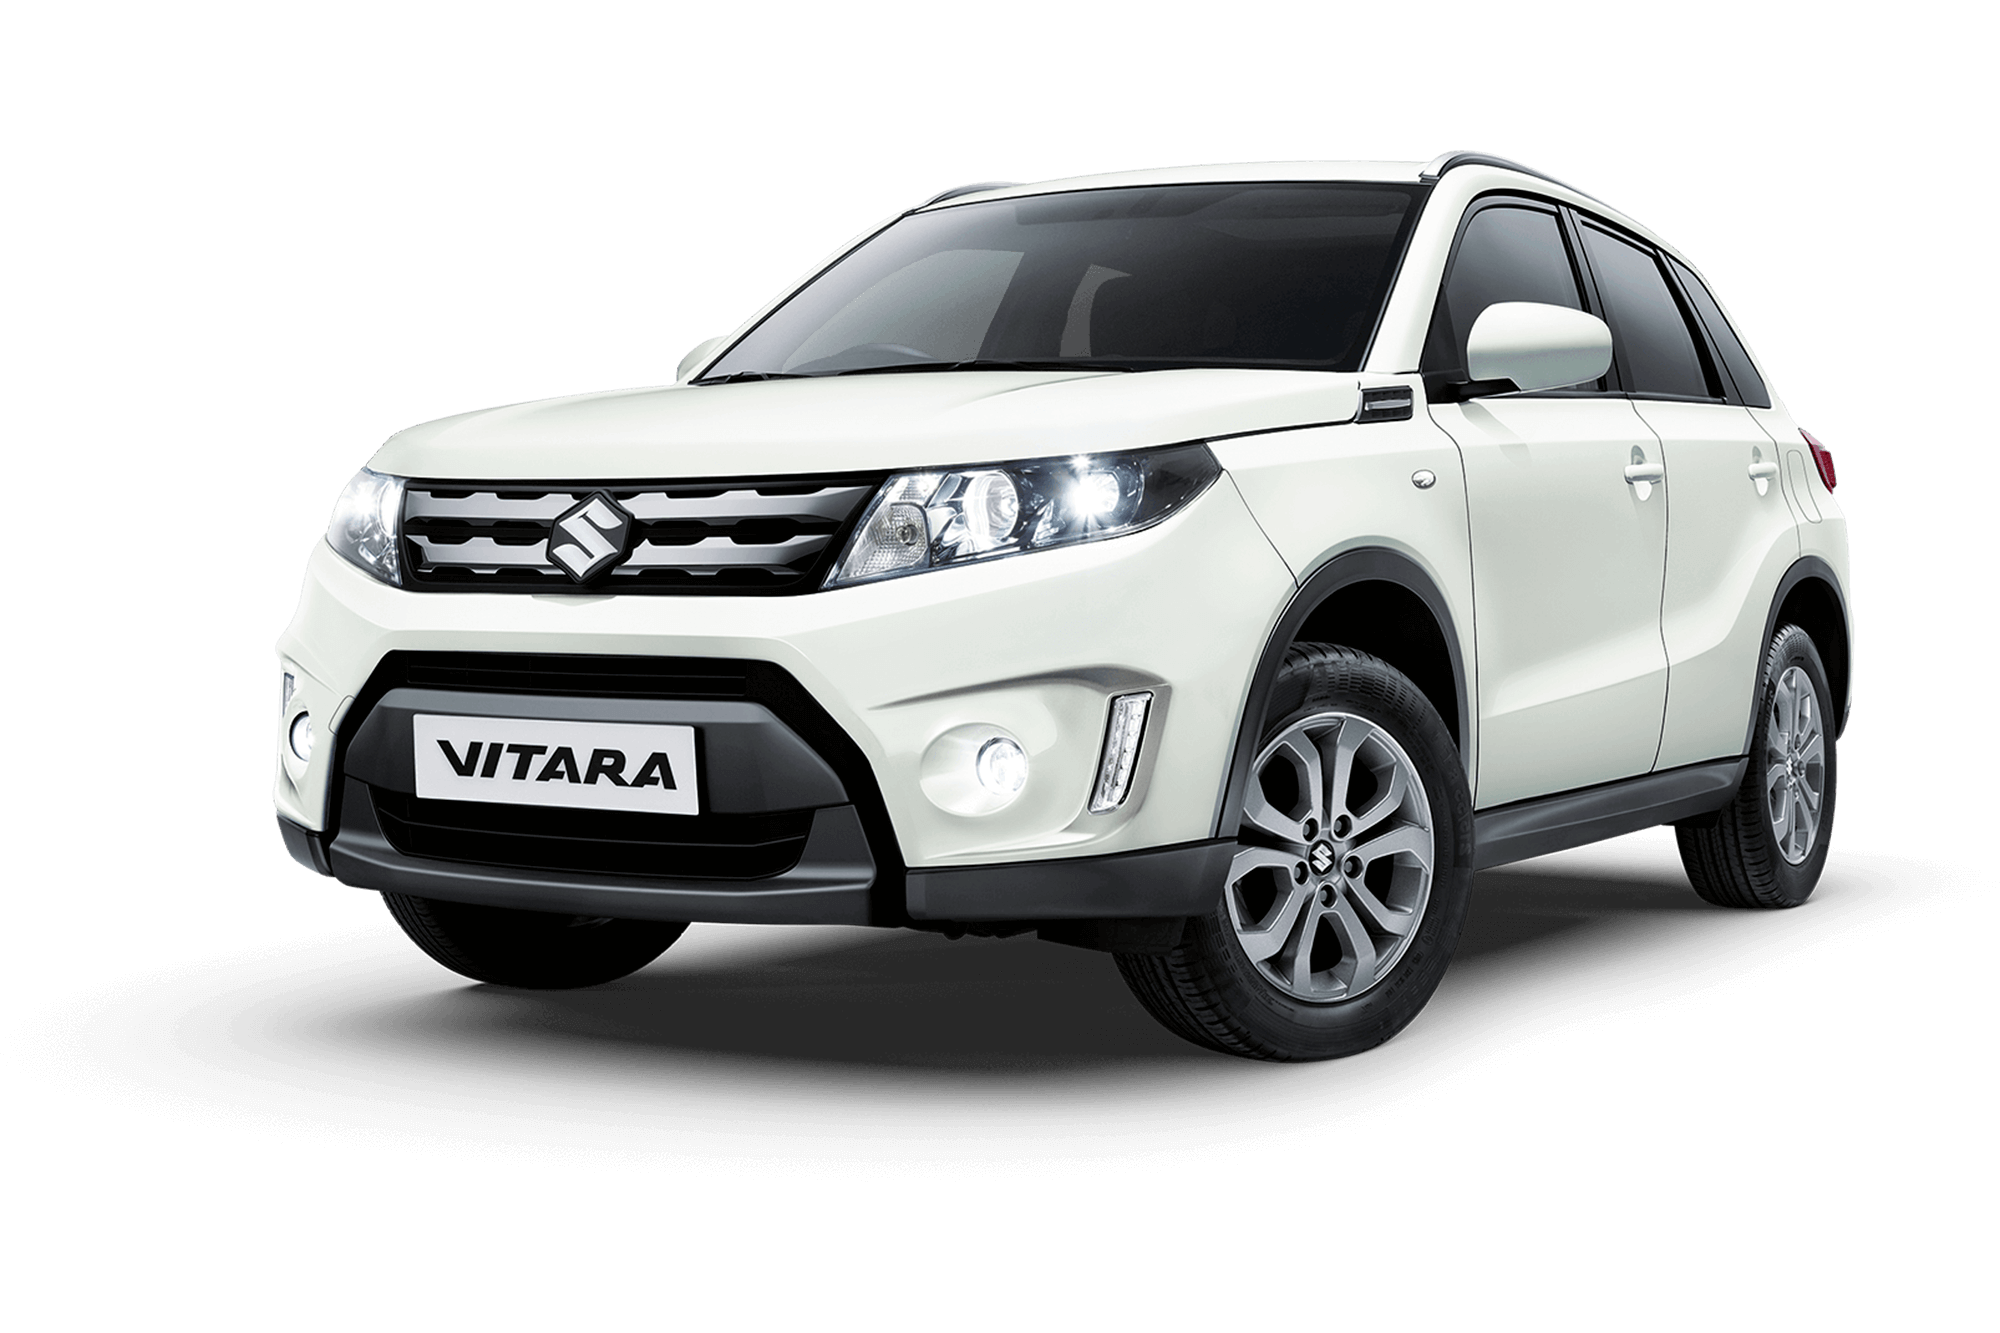 the suzuki vitara sz4 specs price suzuki cars uk. Black Bedroom Furniture Sets. Home Design Ideas